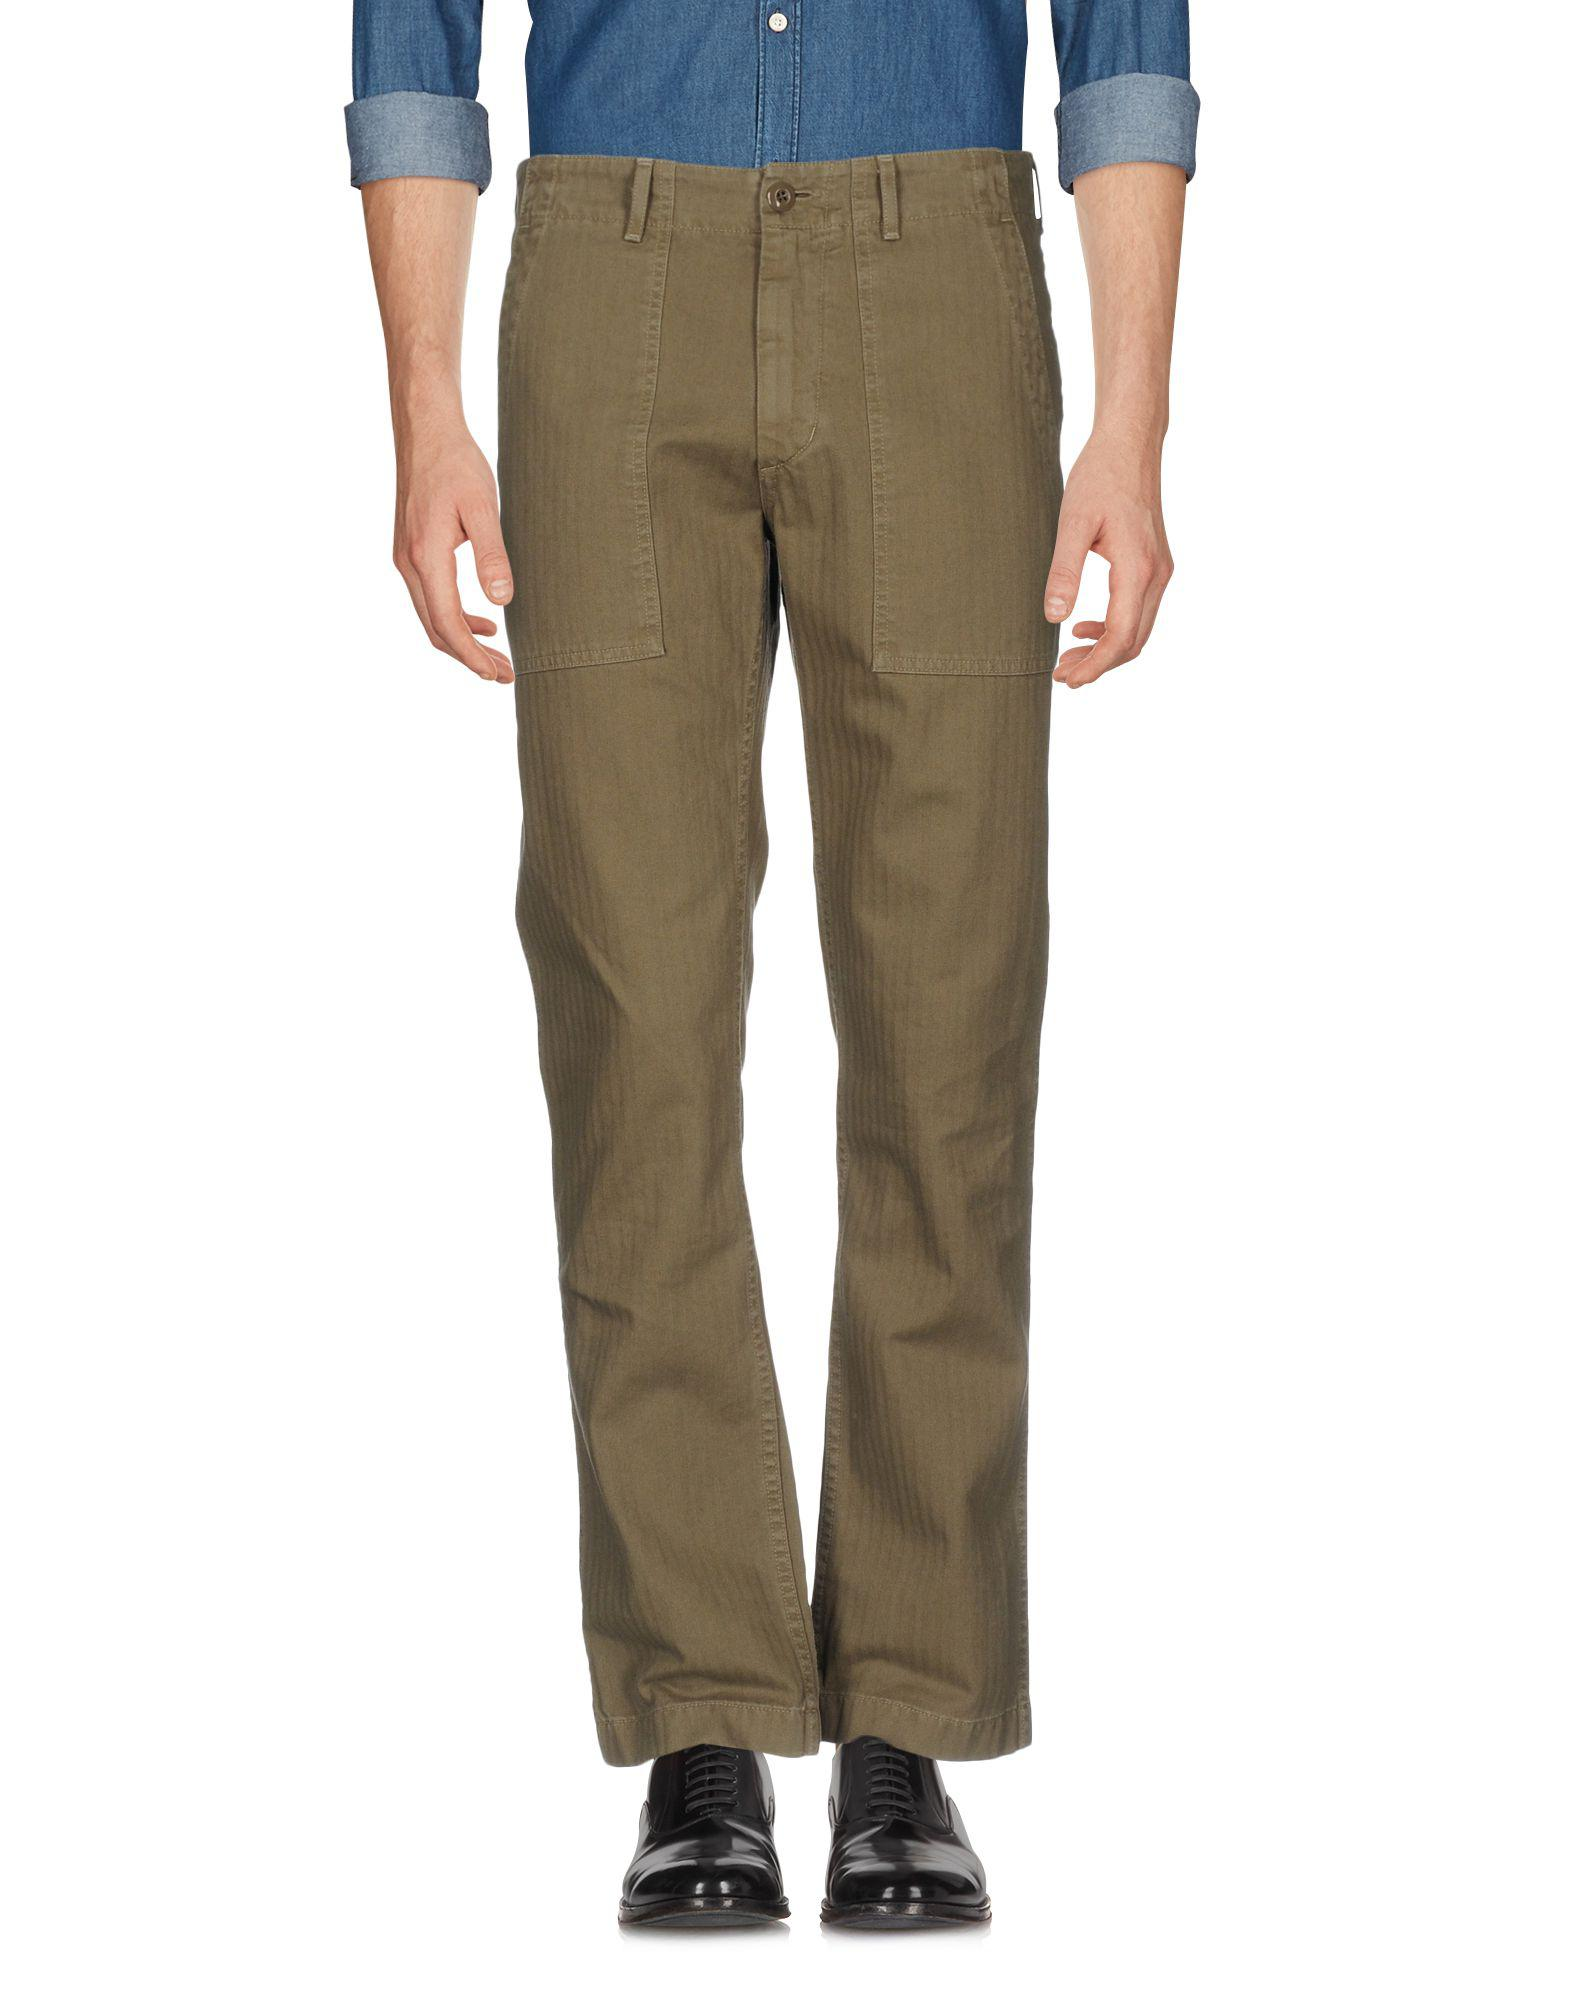 TROUSERS - Casual trousers Alex Mill Clearance Real BqAGkr2G